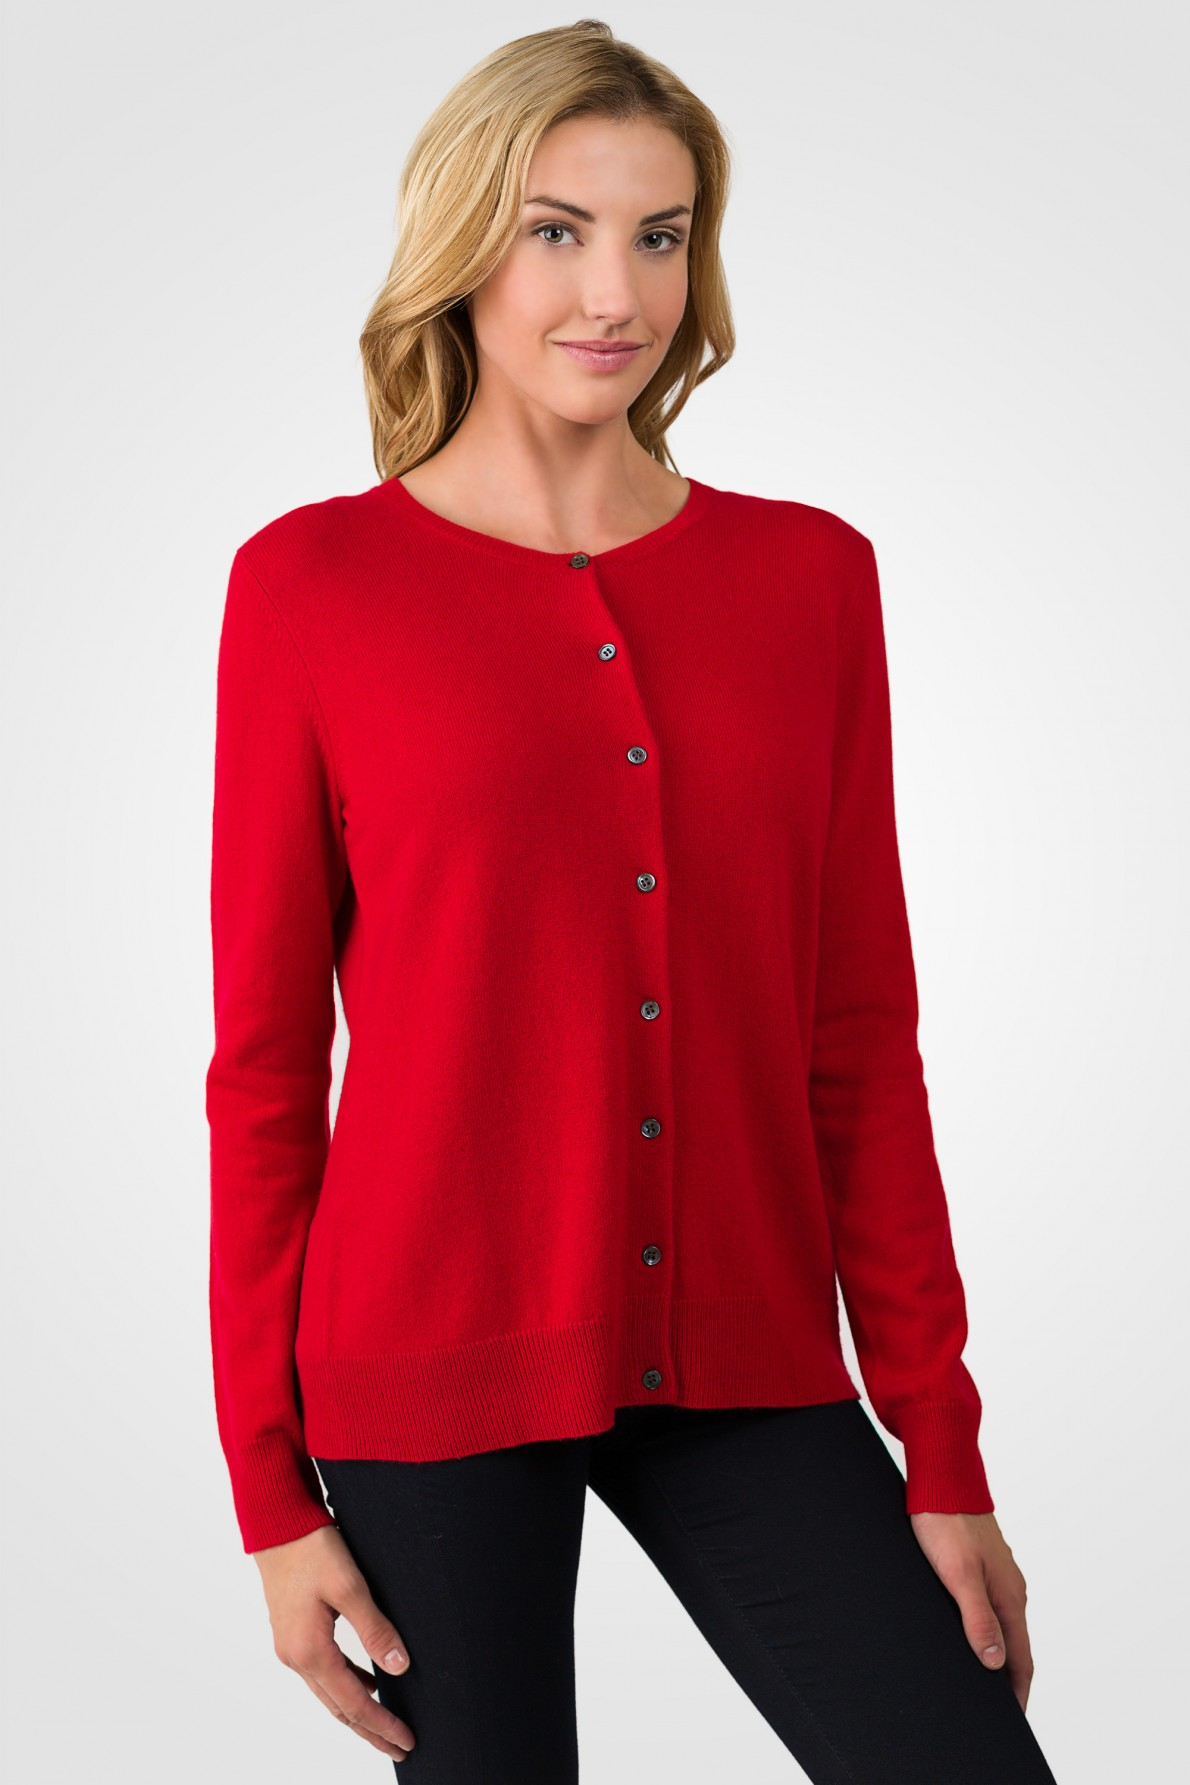 cashmere cardigan red cashmere button front cardigan sweater right side view SZUBWSE